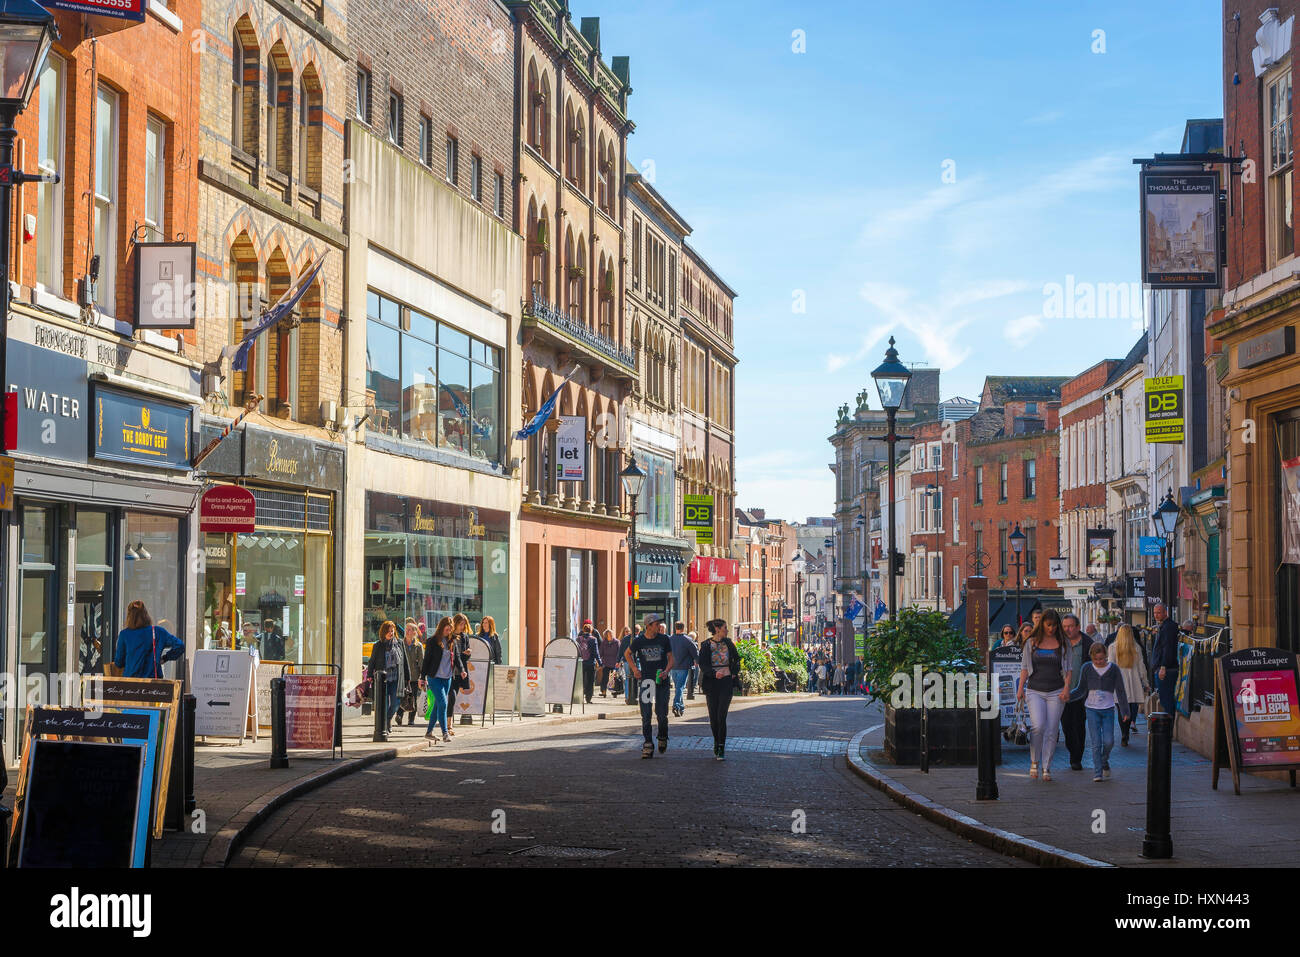 Derby city, the main shopping thoroughfare, called Iron Gate, runs through the centre of the city of Derby, Derbyshire, - Stock Image